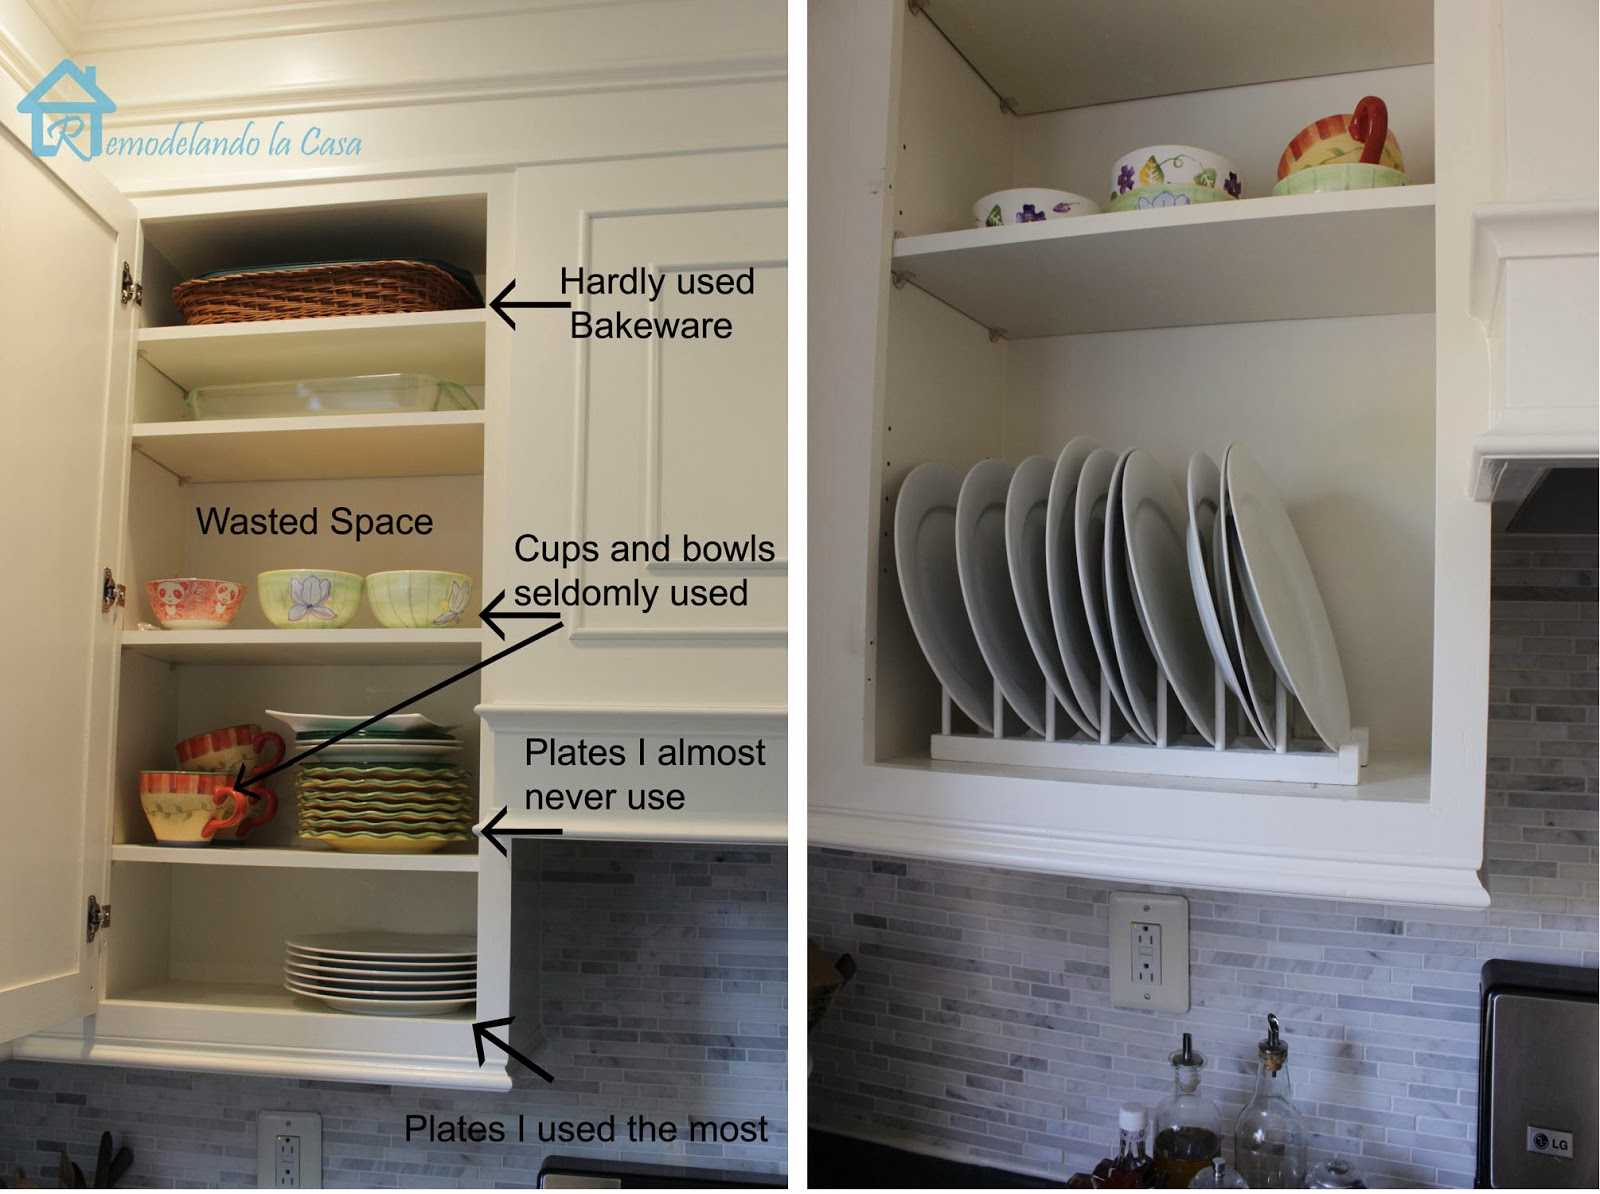 Coffee Cup Rack Under Cabinet Remodelando La Casa Diy Inside Cabinet Plate Rack